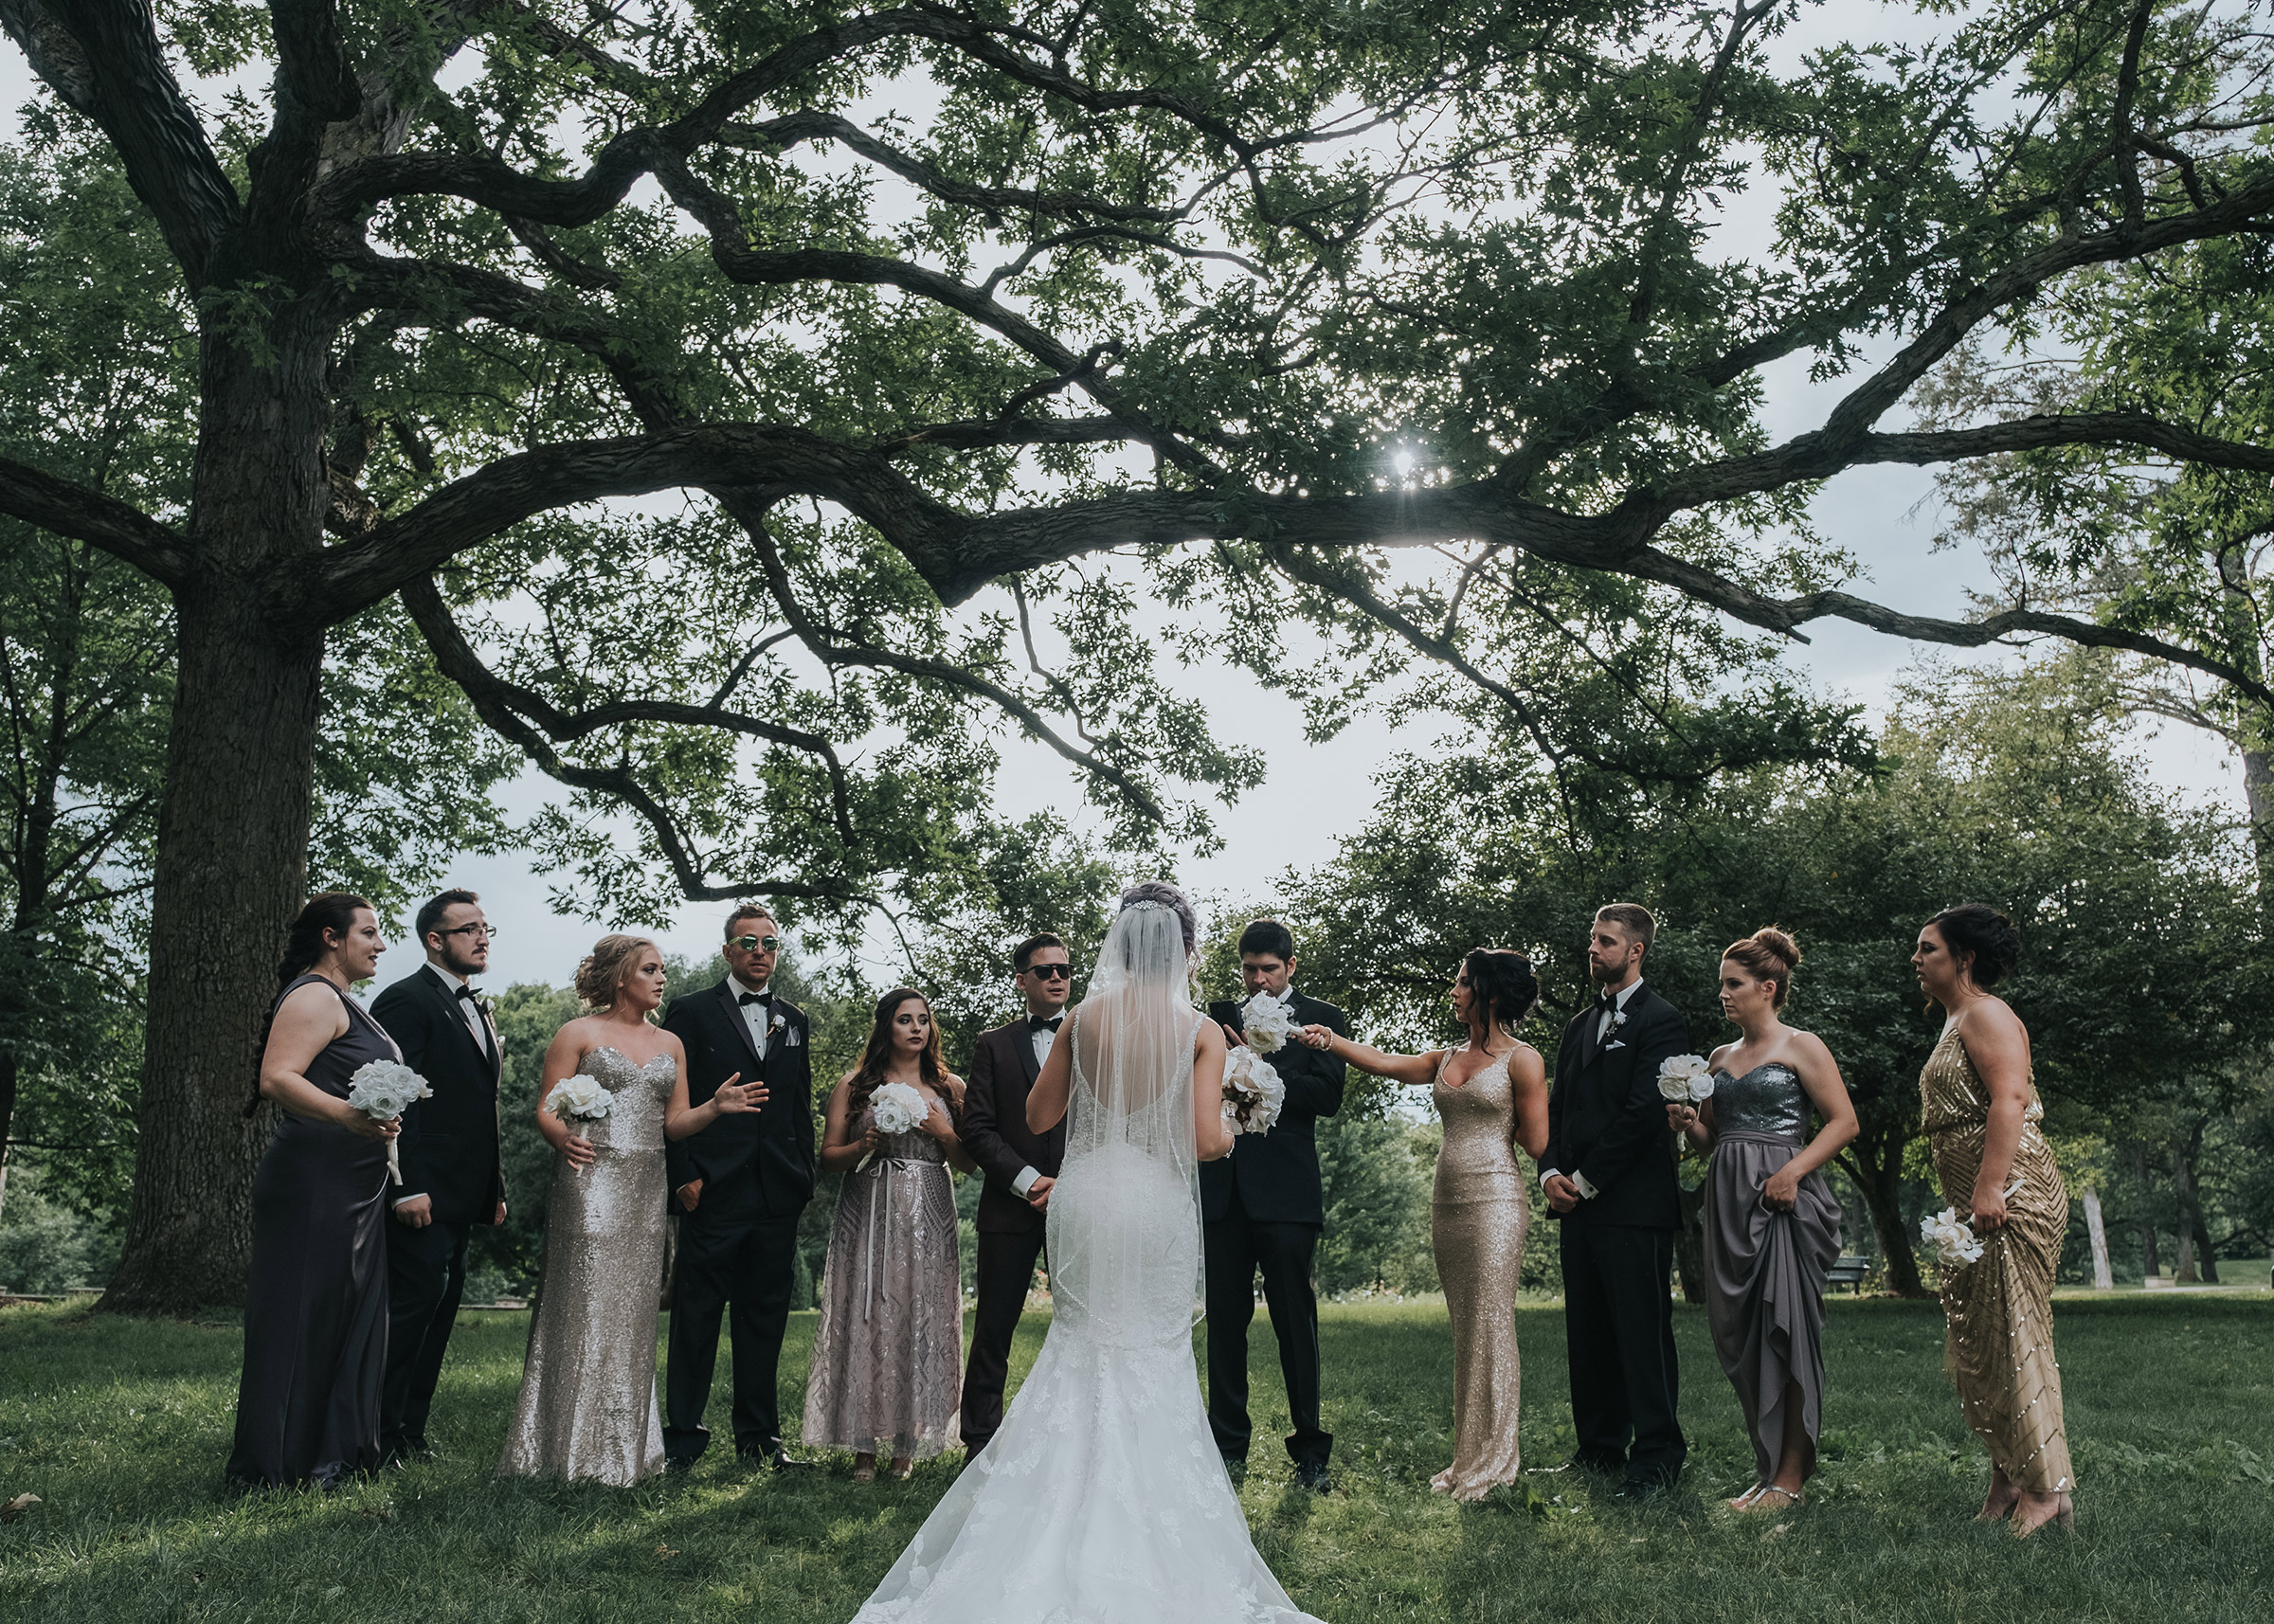 bride-telling-wedding-party-how-to-pose-desmoines-iowa-art-center-raelyn-ramey-photography.jpg